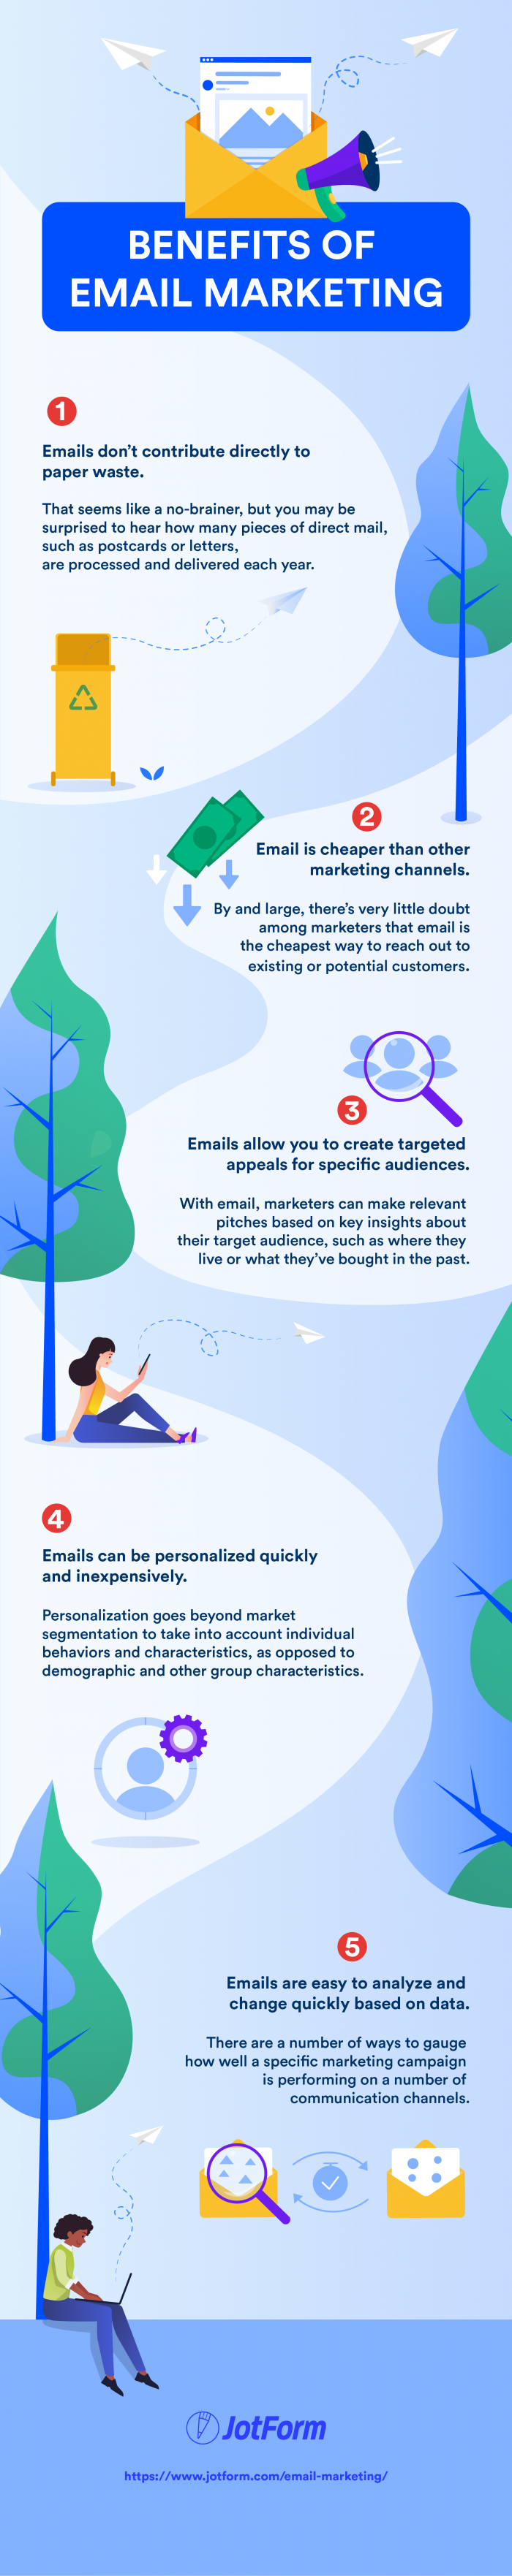 vantaggi dell'email marketing